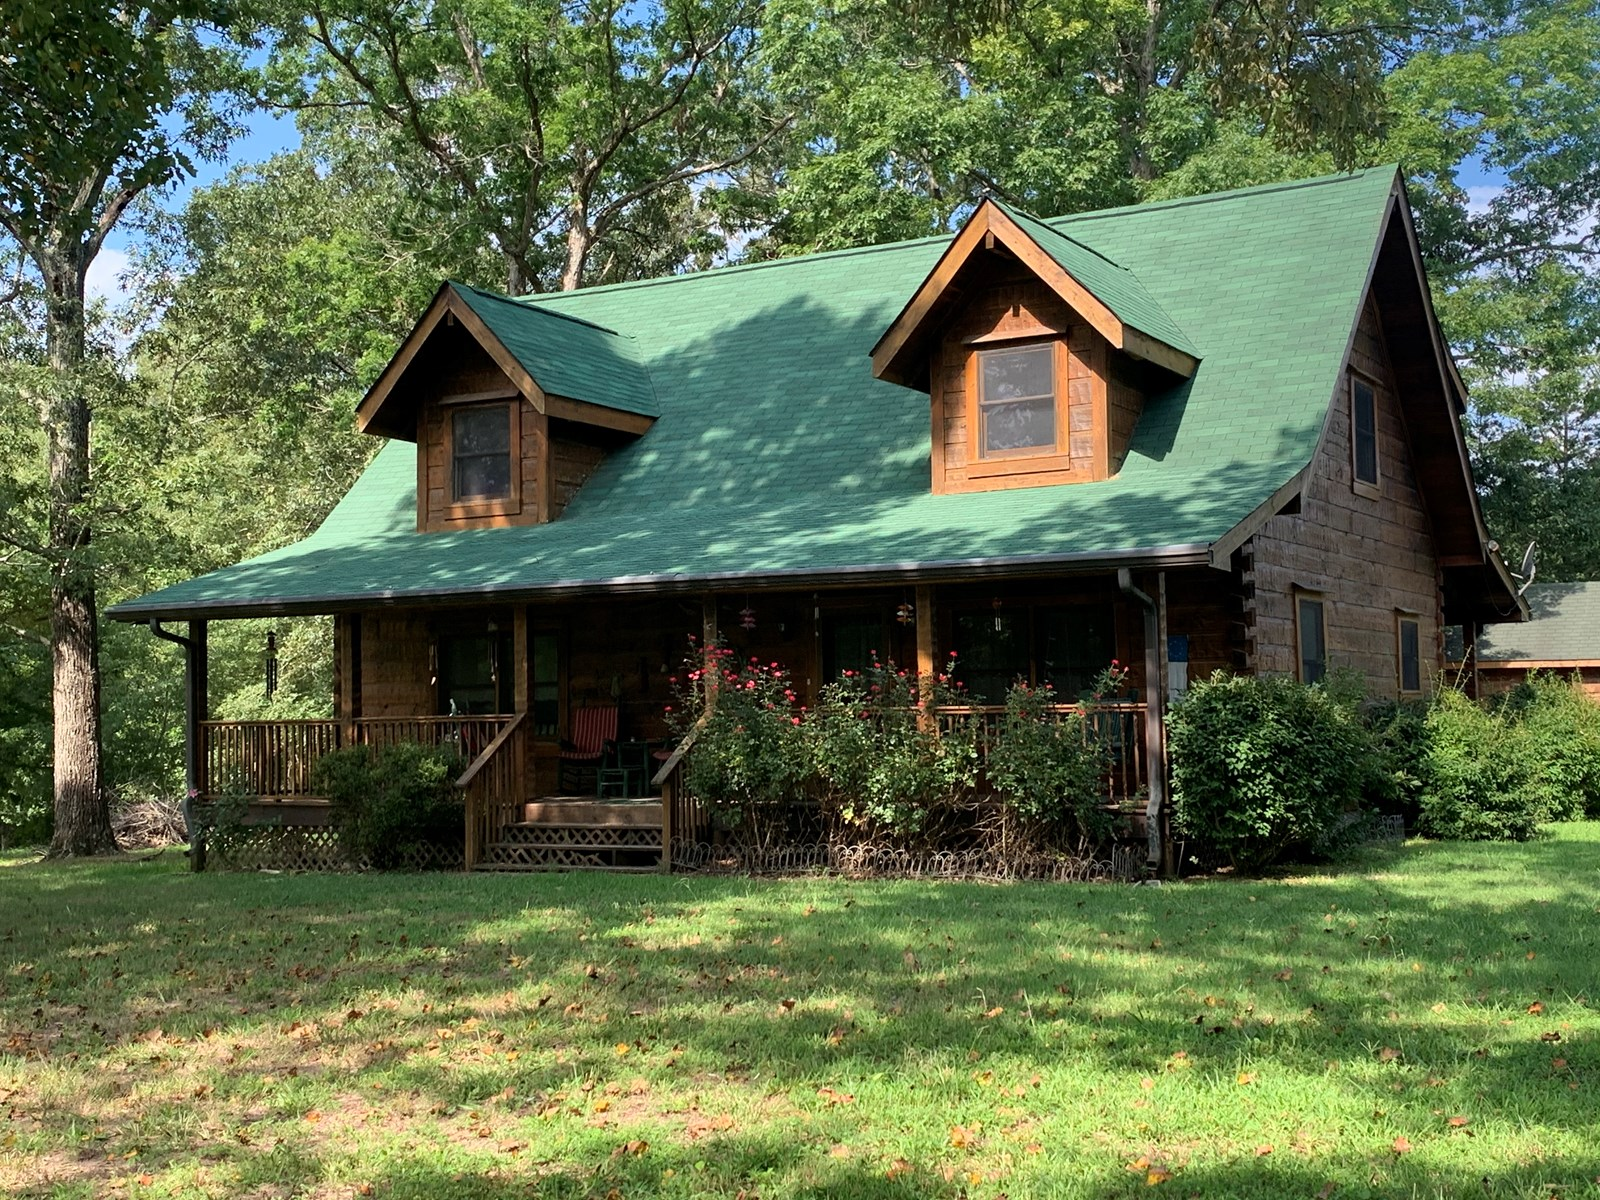 LOG HOME FOR SALE, HOLLADAY TENNESSEE, BENTON COUNTY TN